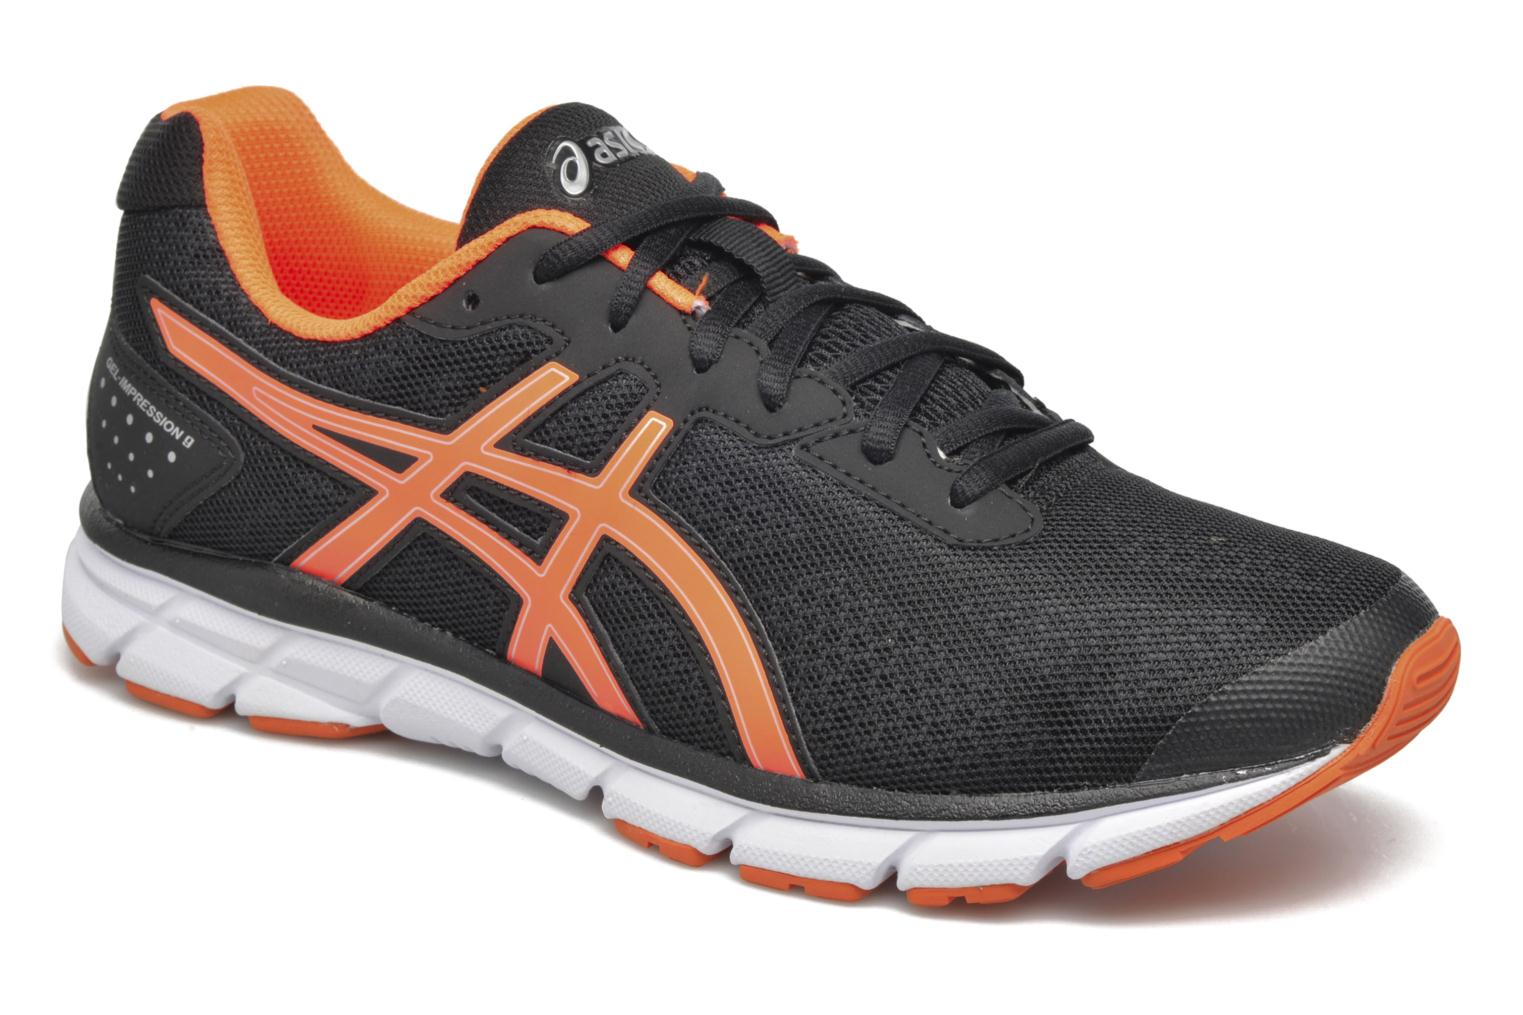 asics shoes types manslaughter meaning in urdu 673021